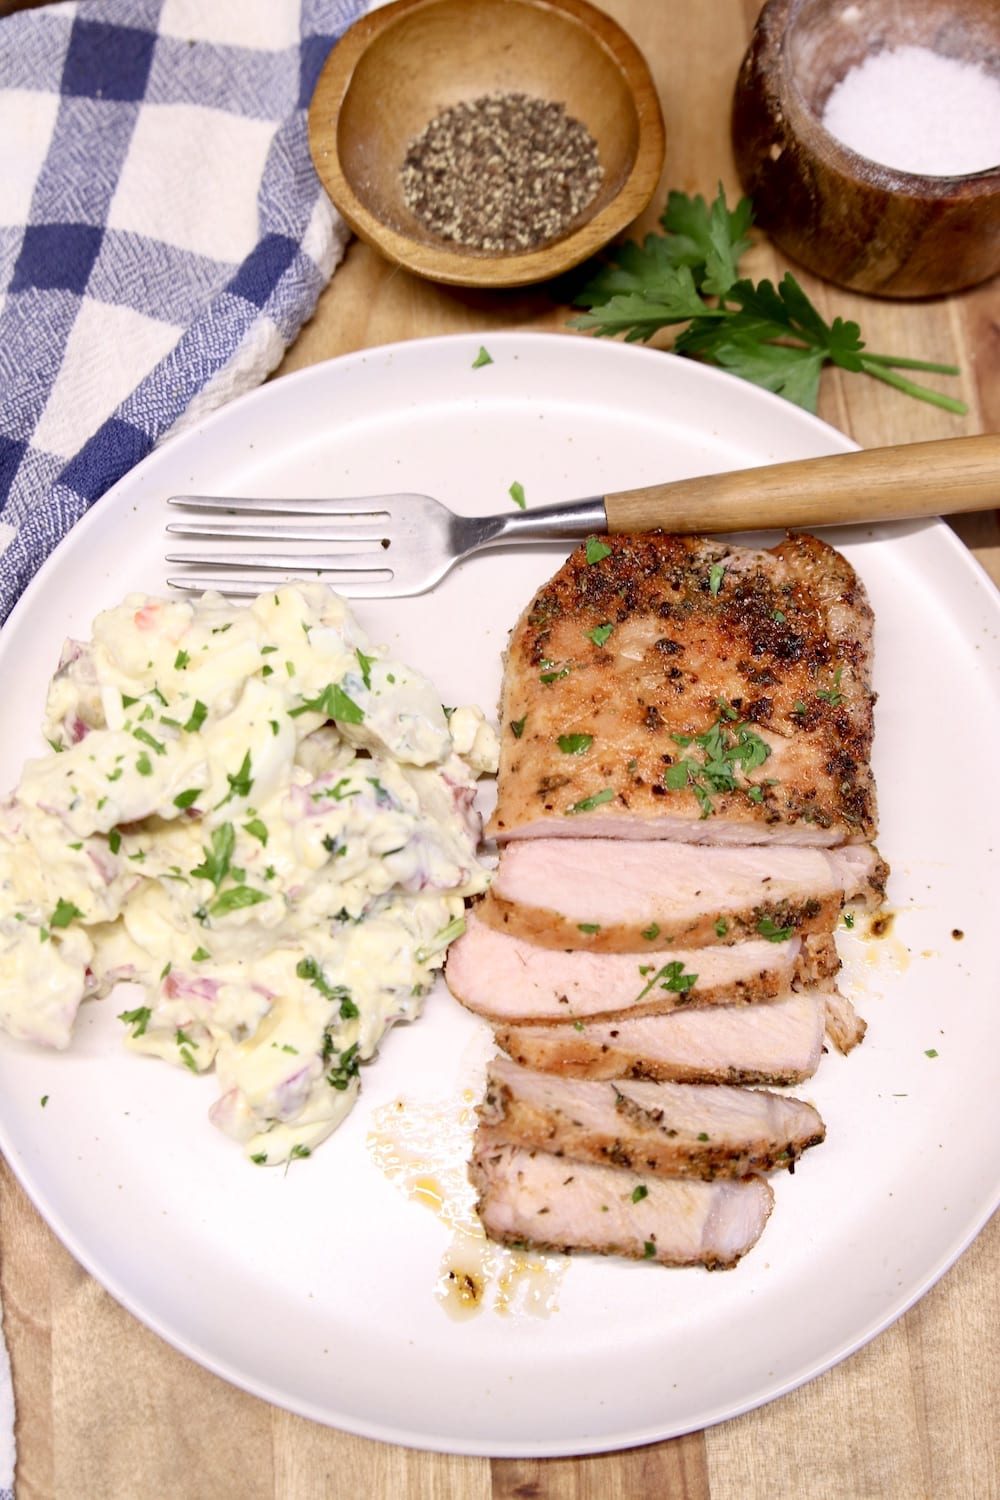 Plate with a pork chop, partially sliced and potato salad, fork